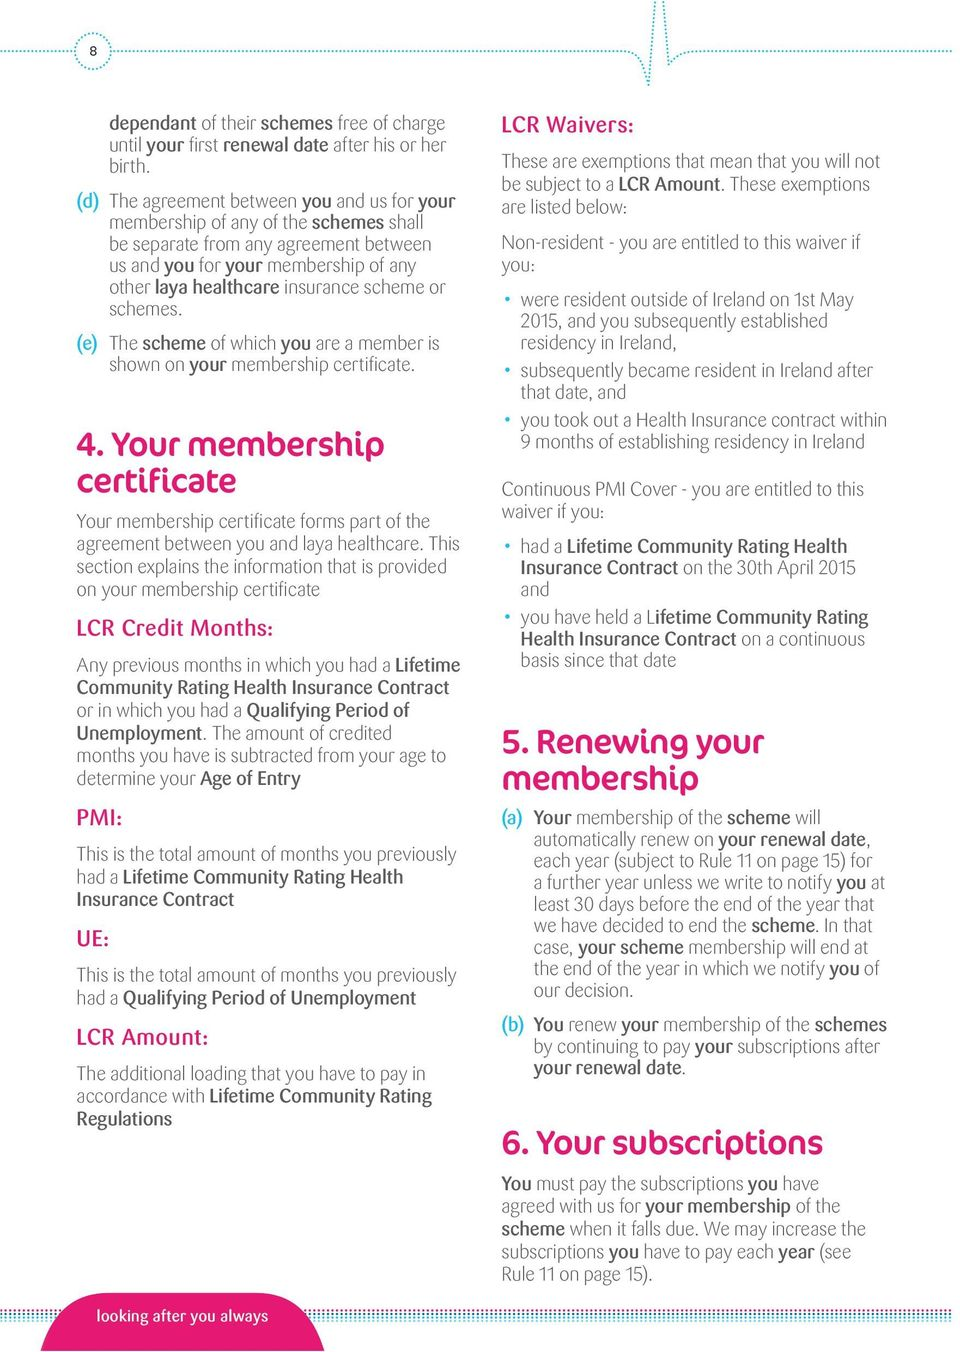 scheme or schemes. (e) The scheme of which you are a member is shown on your membership certificate. 4.